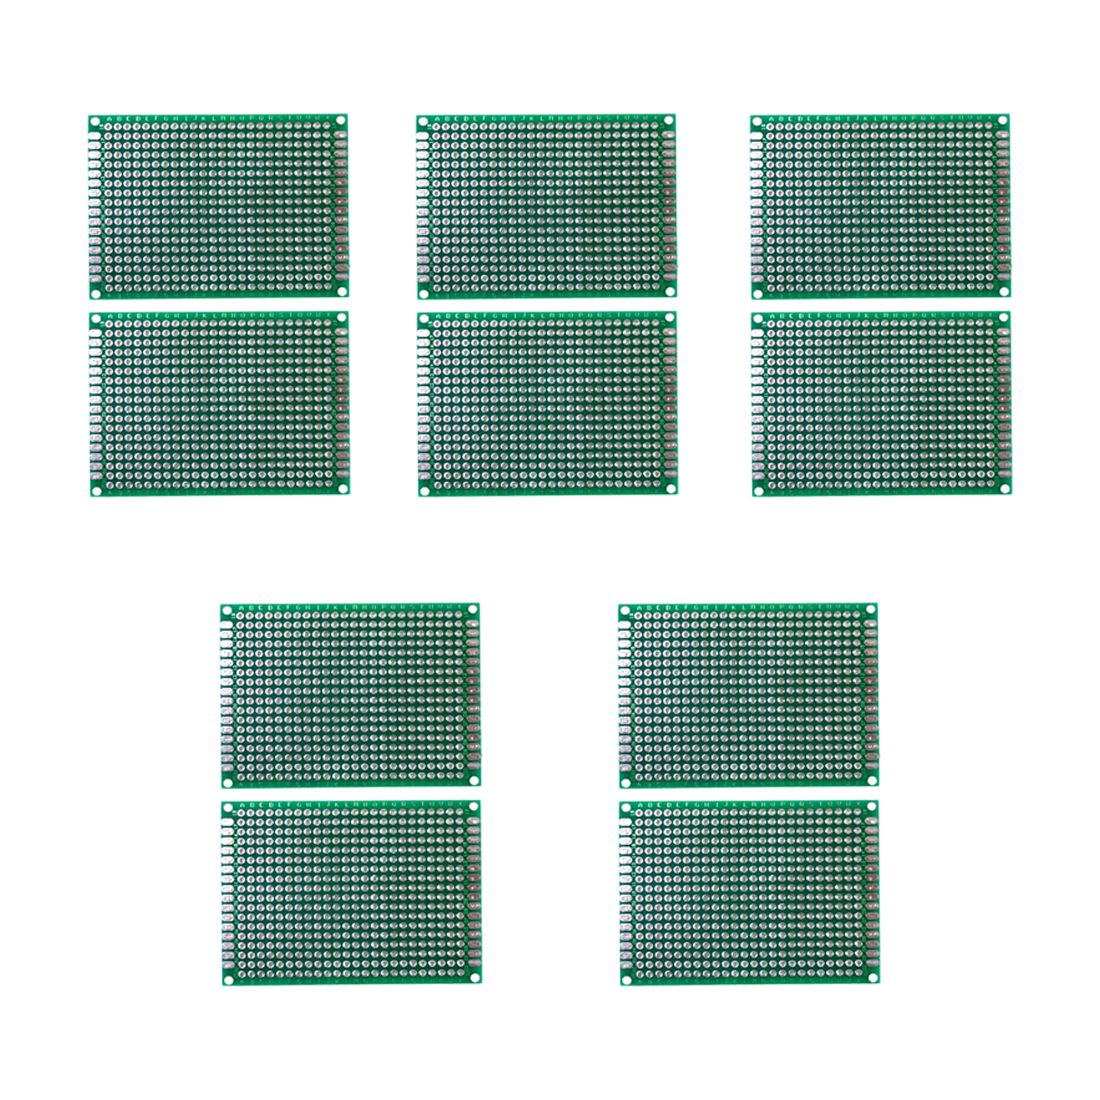 10pcs 5x7 Cm Double Side Diy Prototype Circuit Breadboard Pcb Hot Sale 10 Pcs Universal Printed Board Package Contents X Note Light Shooting And Different Displays May Cause The Color Of